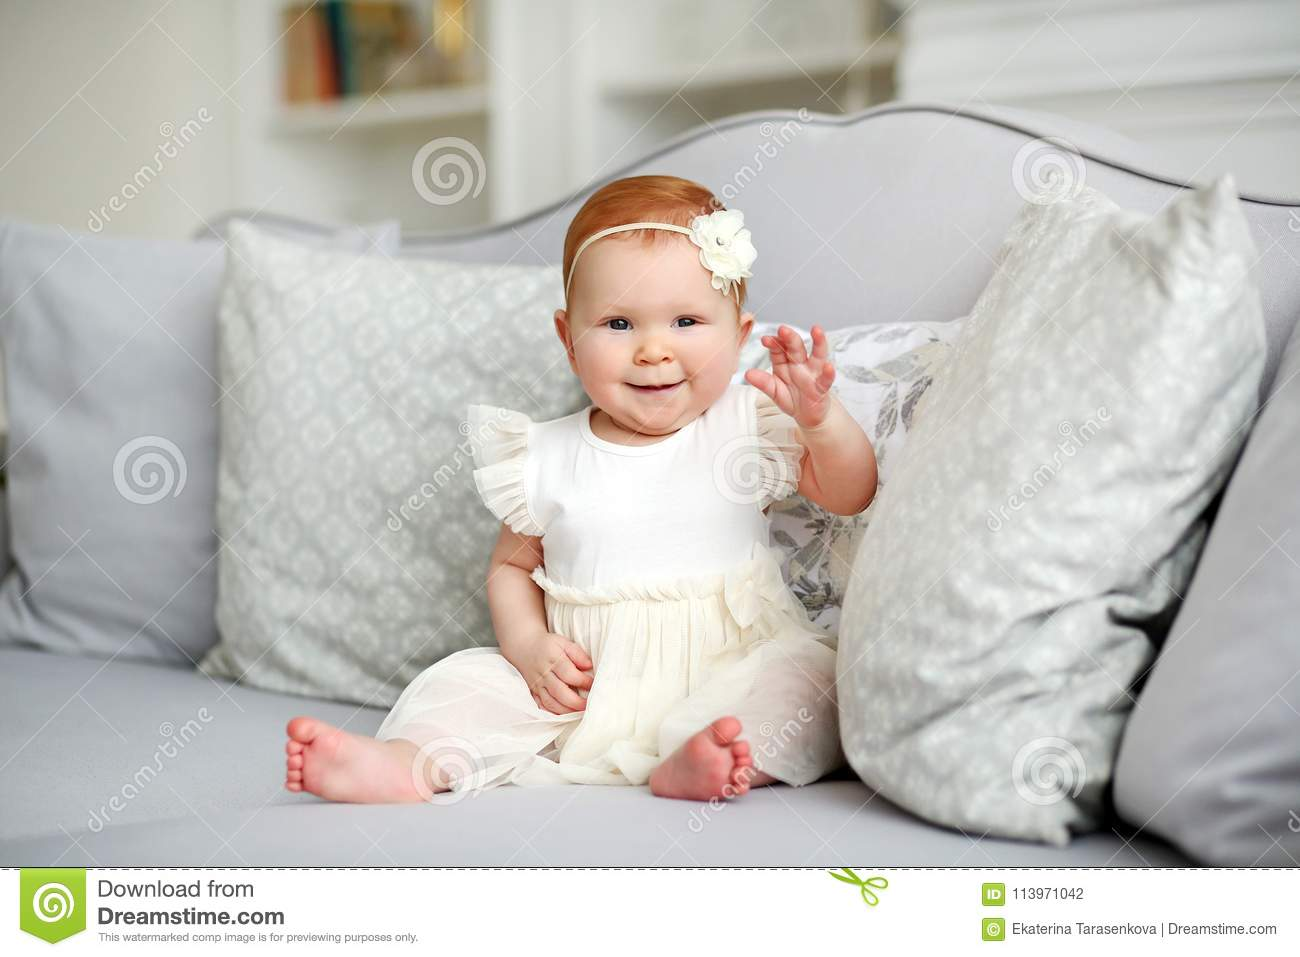 f26c4ef62 Portrait Of A Cute Smiling Little Girl In A White Dress In A Home ...